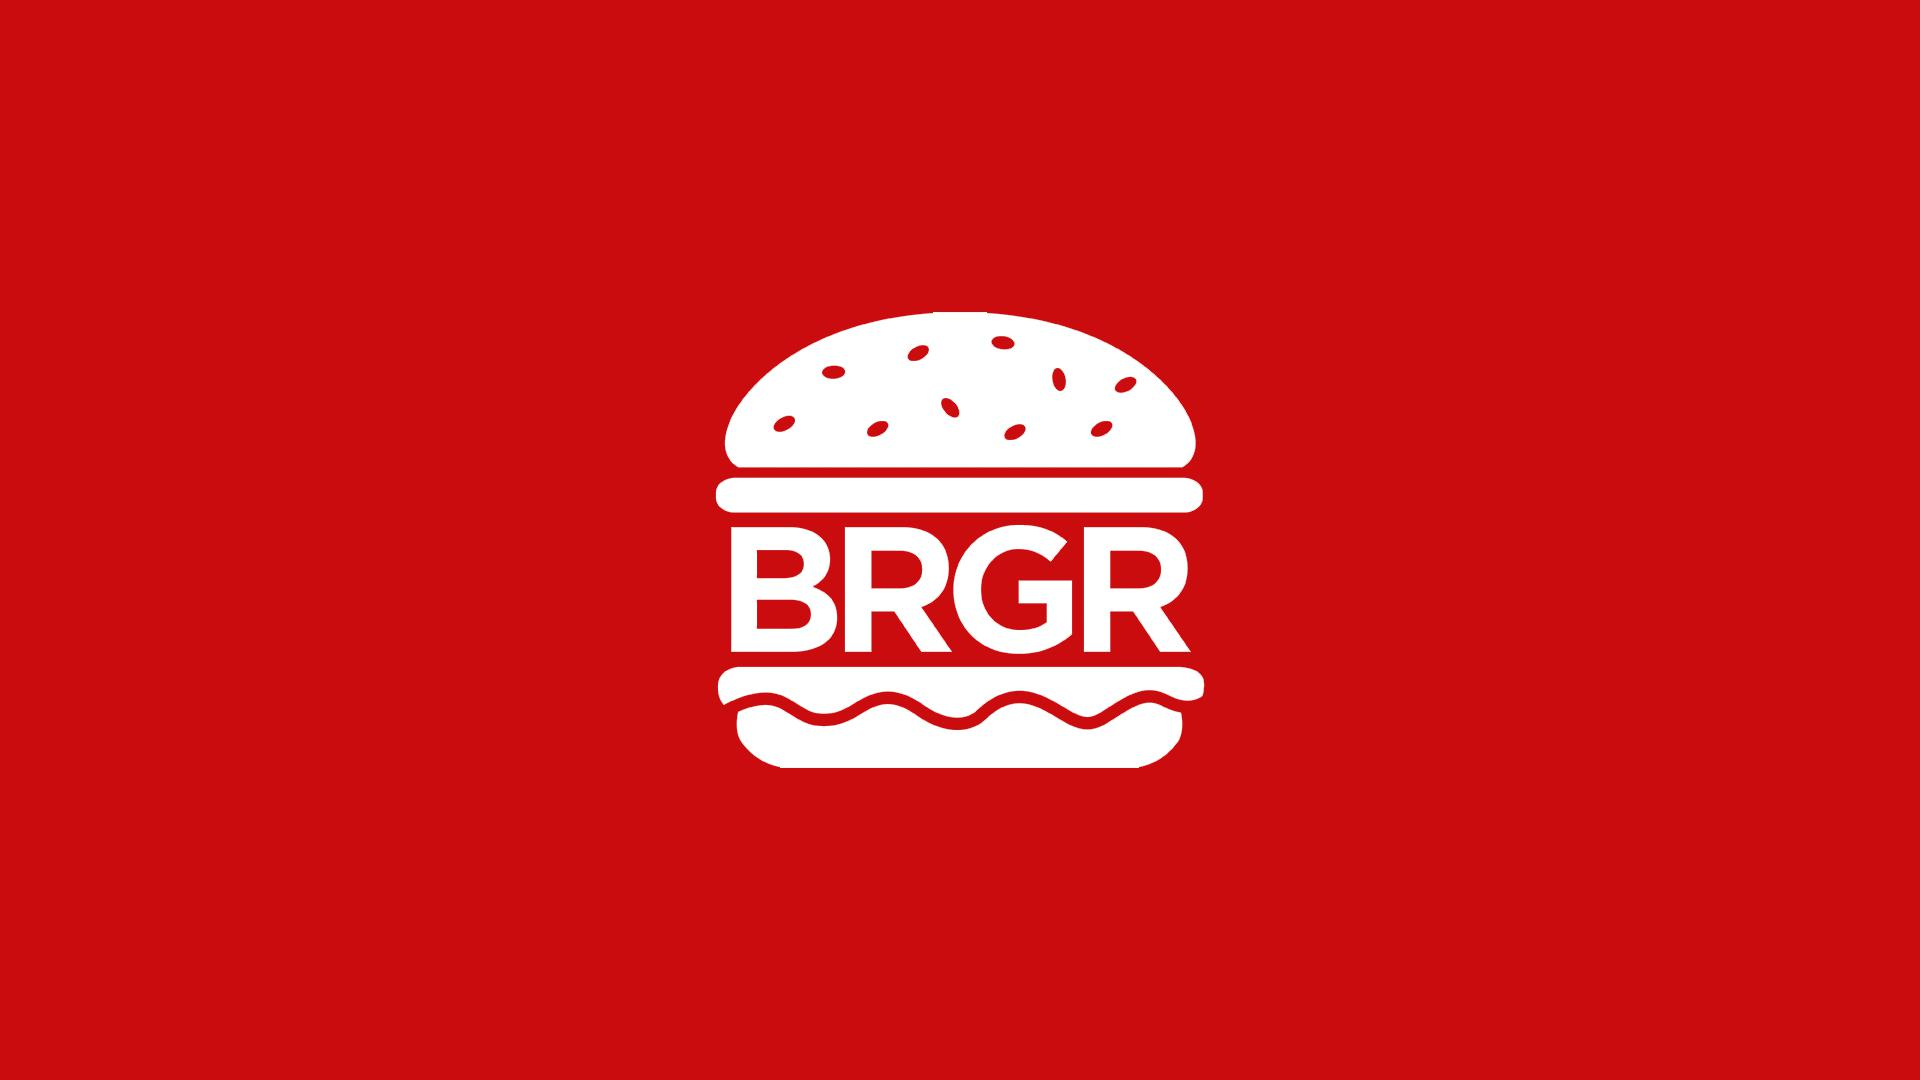 BRGR Logo White on Red